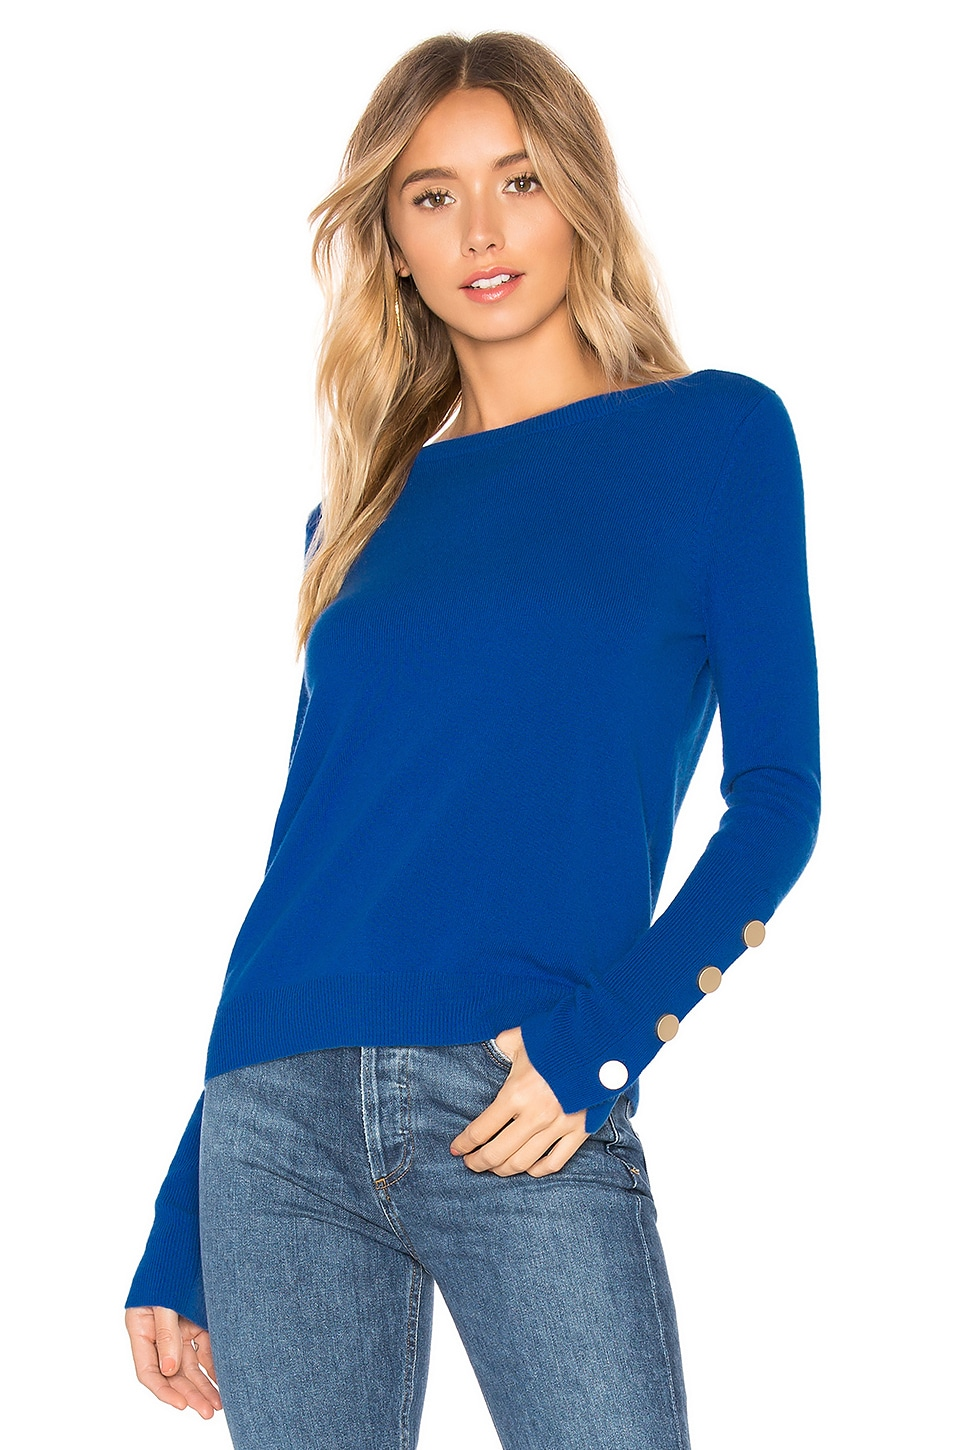 Autumn Cashmere Boatneck Sweater in Nautical